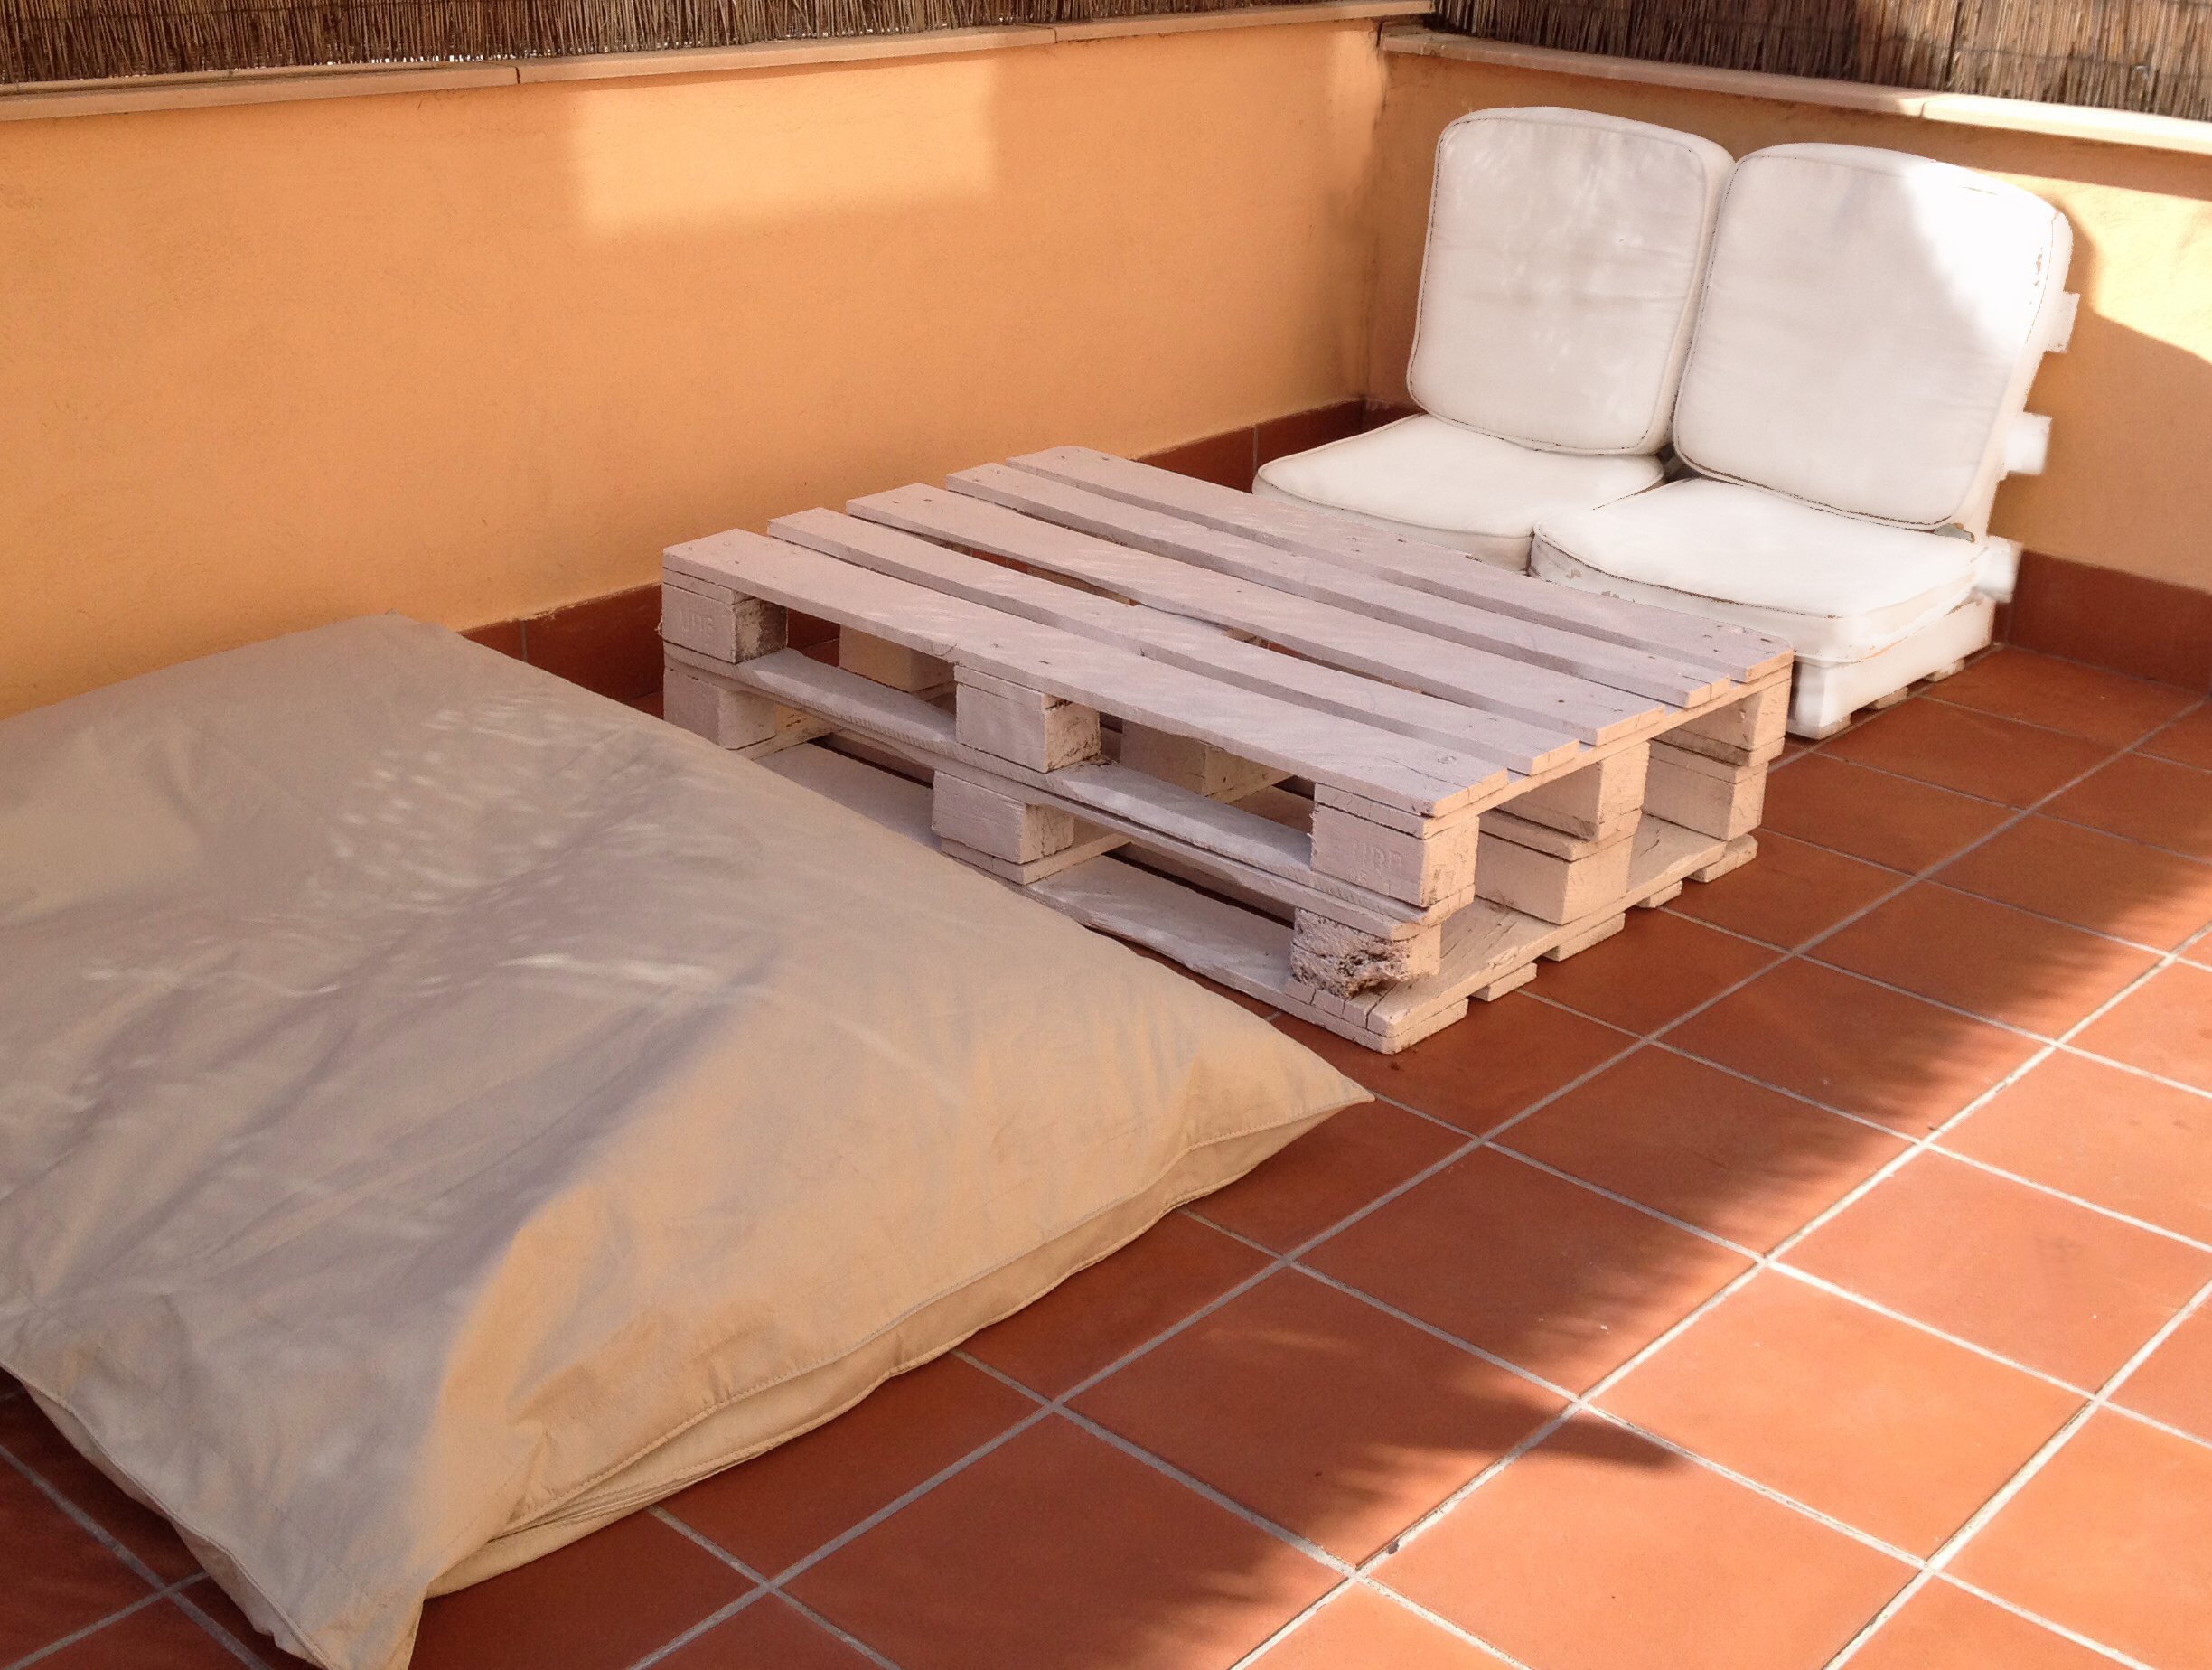 Diy la reina del low cost - Decorar la casa barato ...